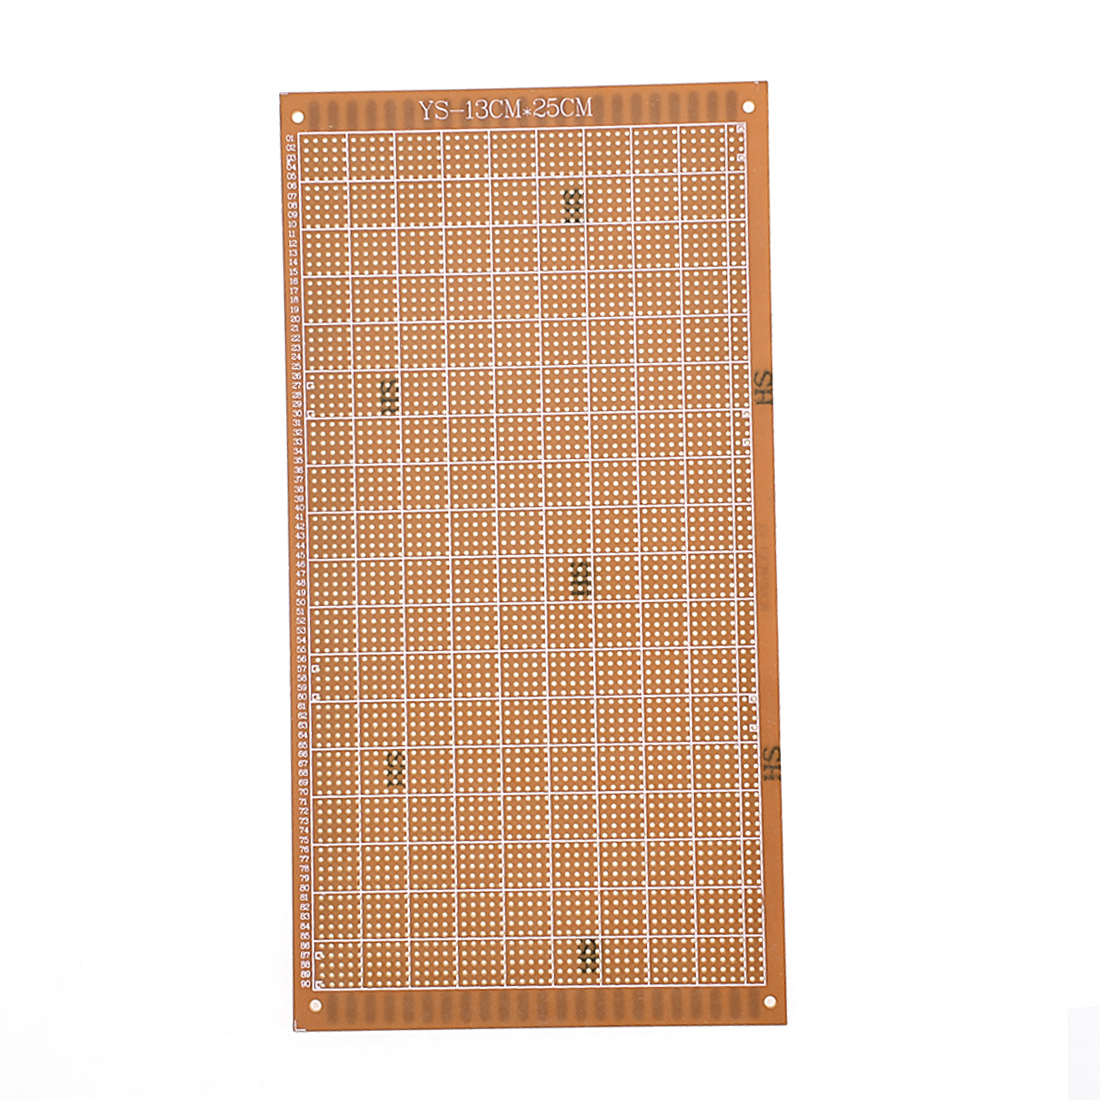 Prototype Single Side Coppered Universal PCB Circuit Board 25x13cm